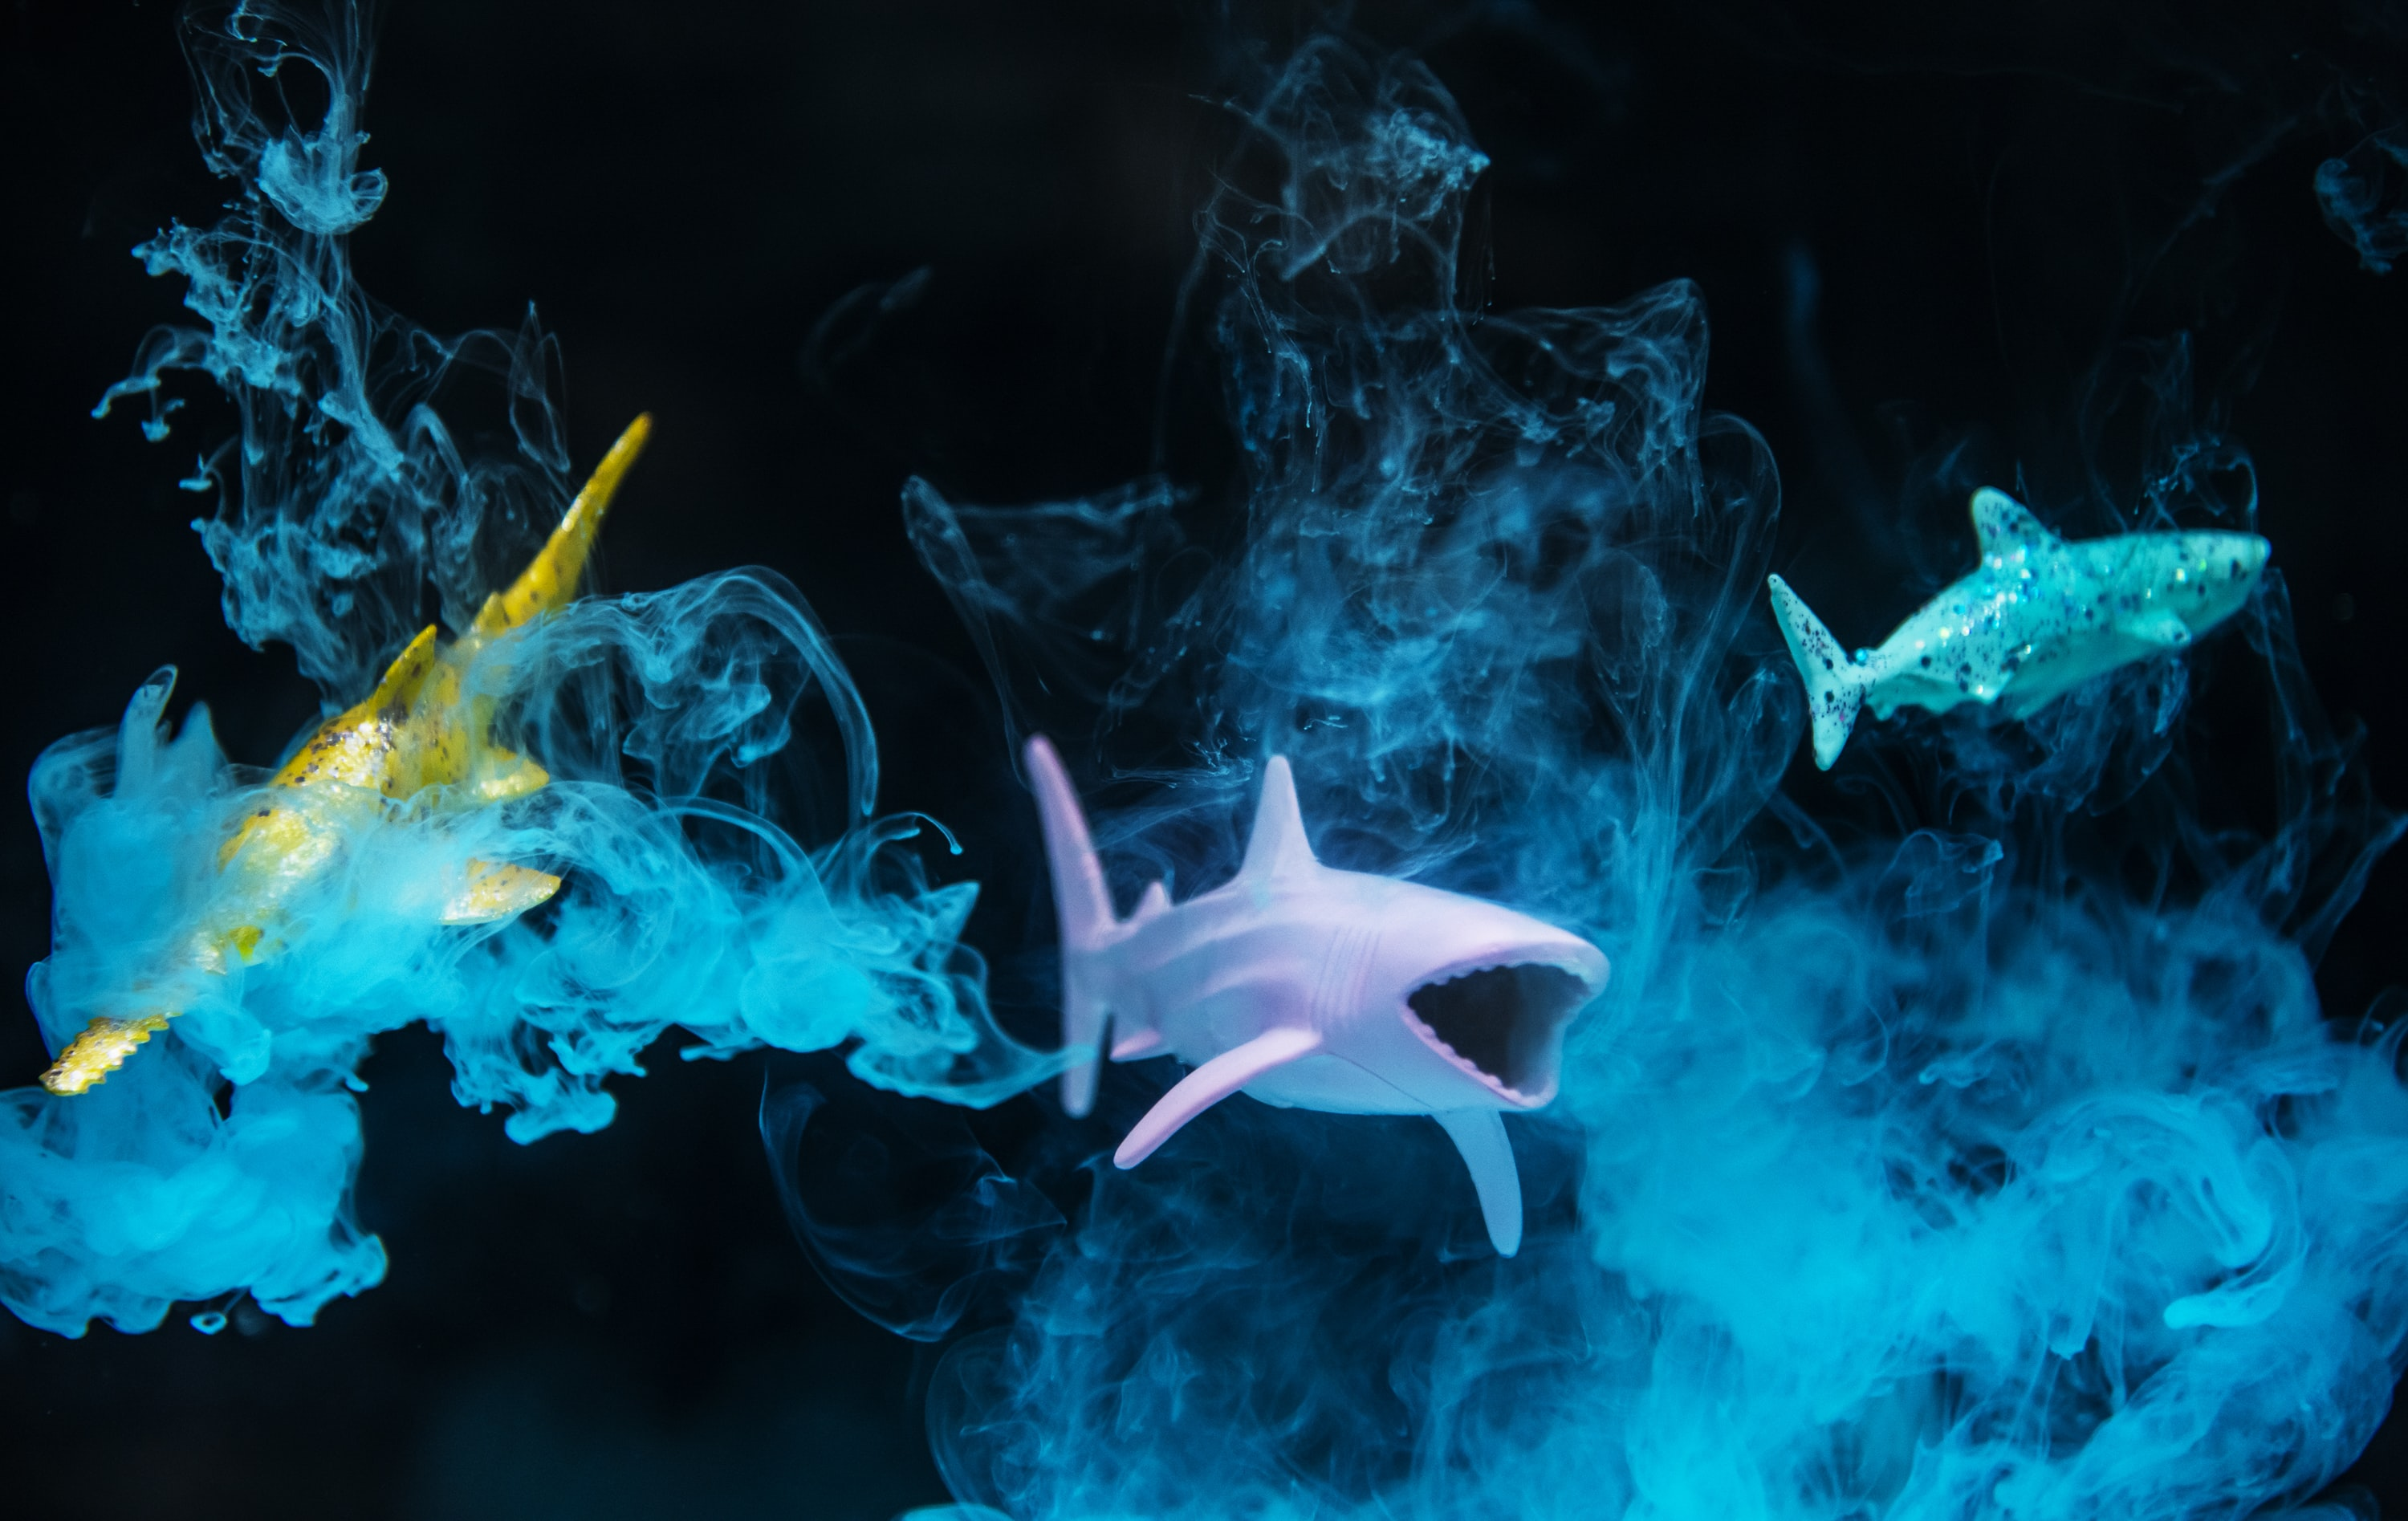 3D shark and smoke digital illustration